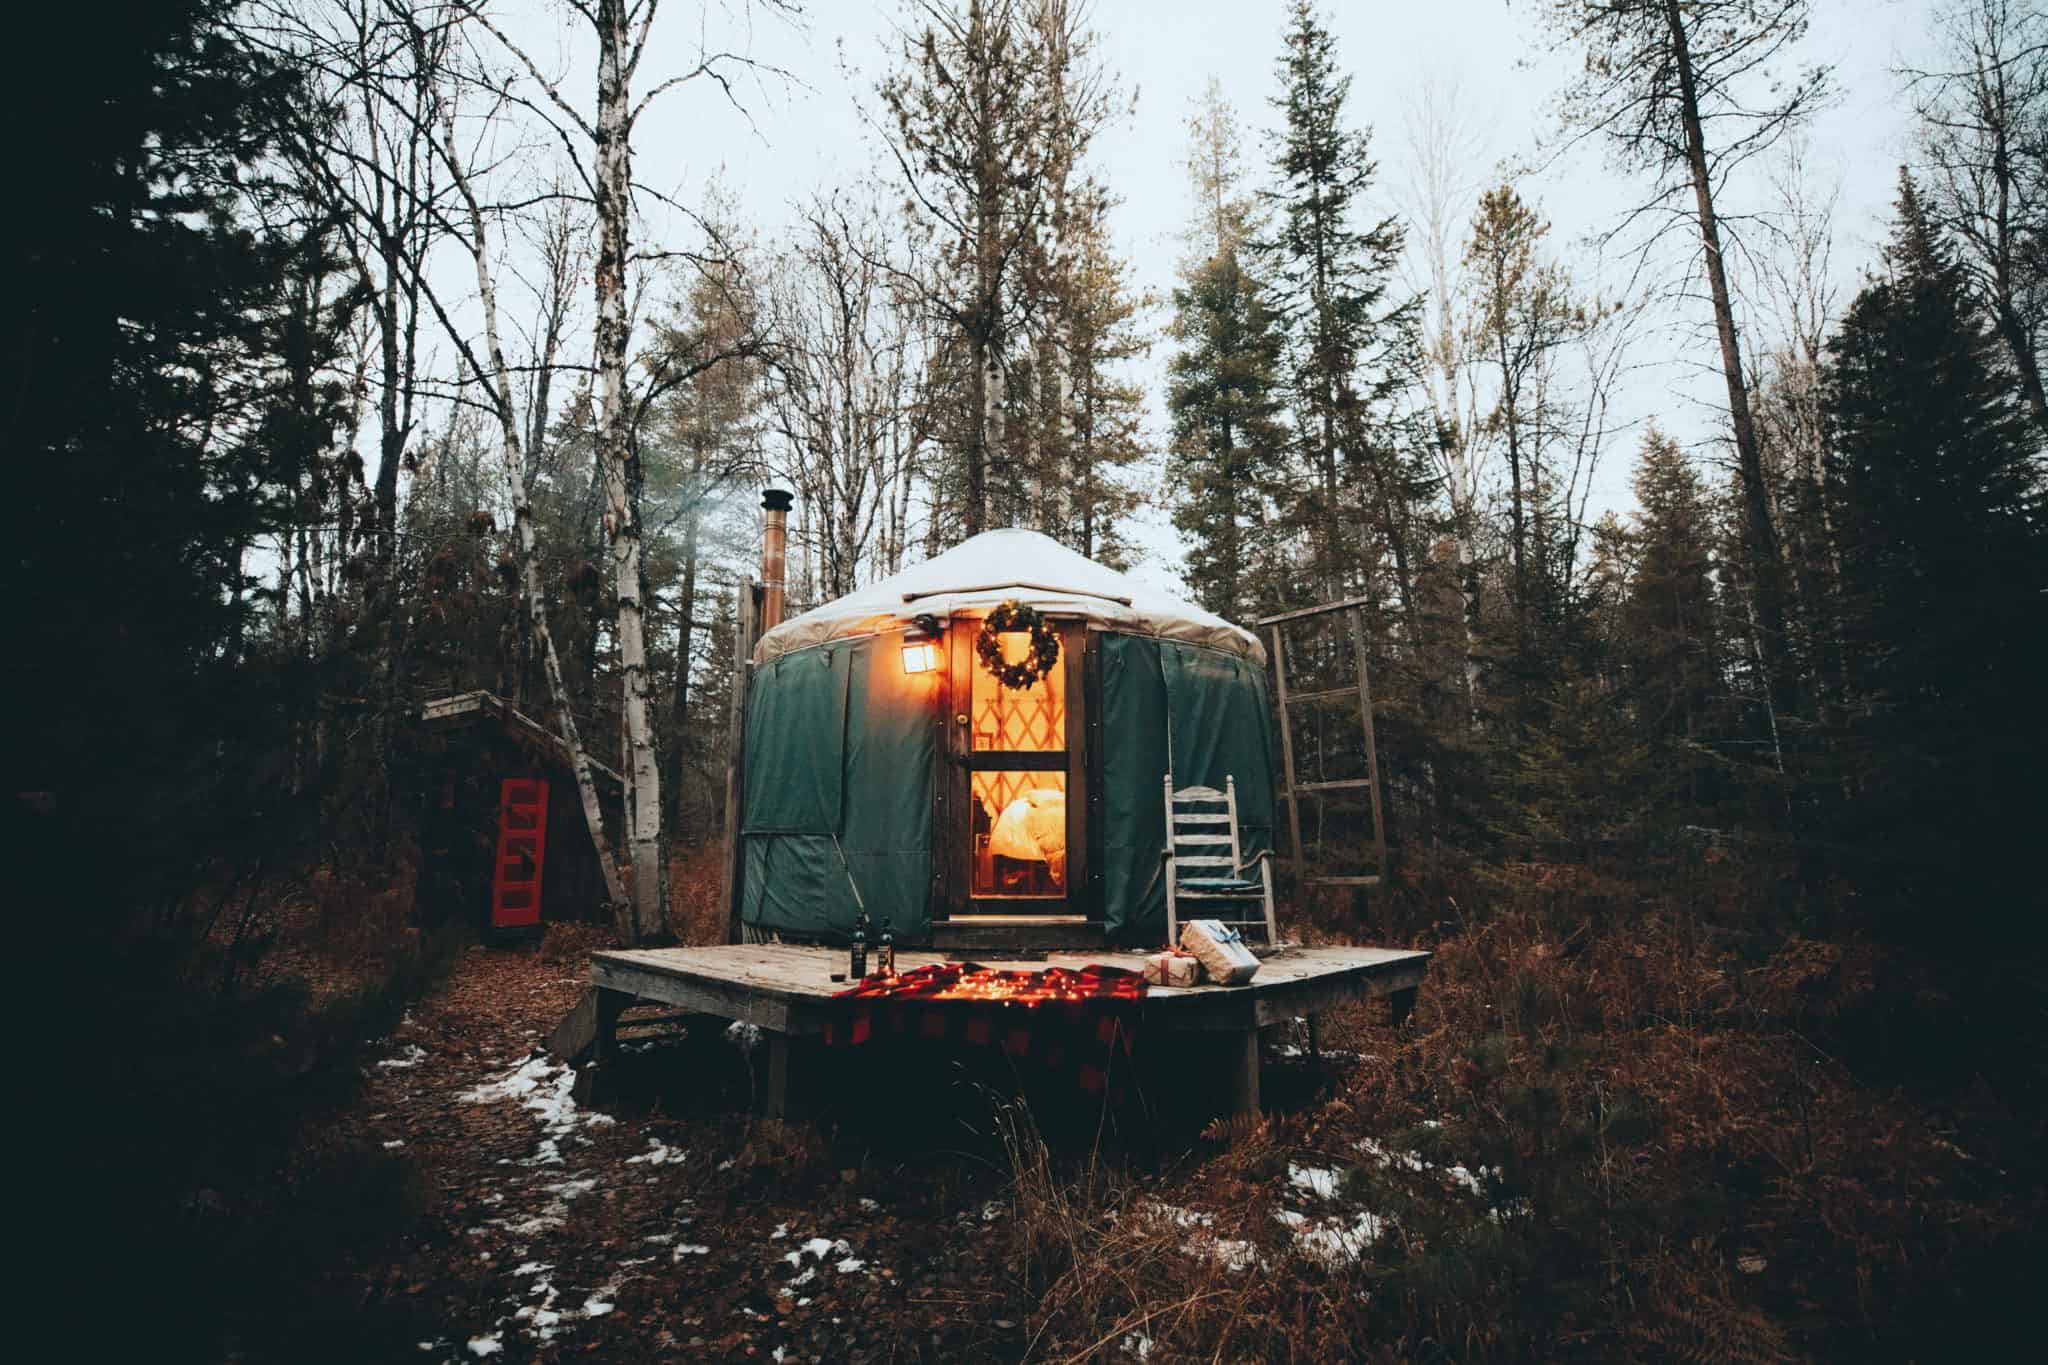 Glamping in a yurt during the holidays